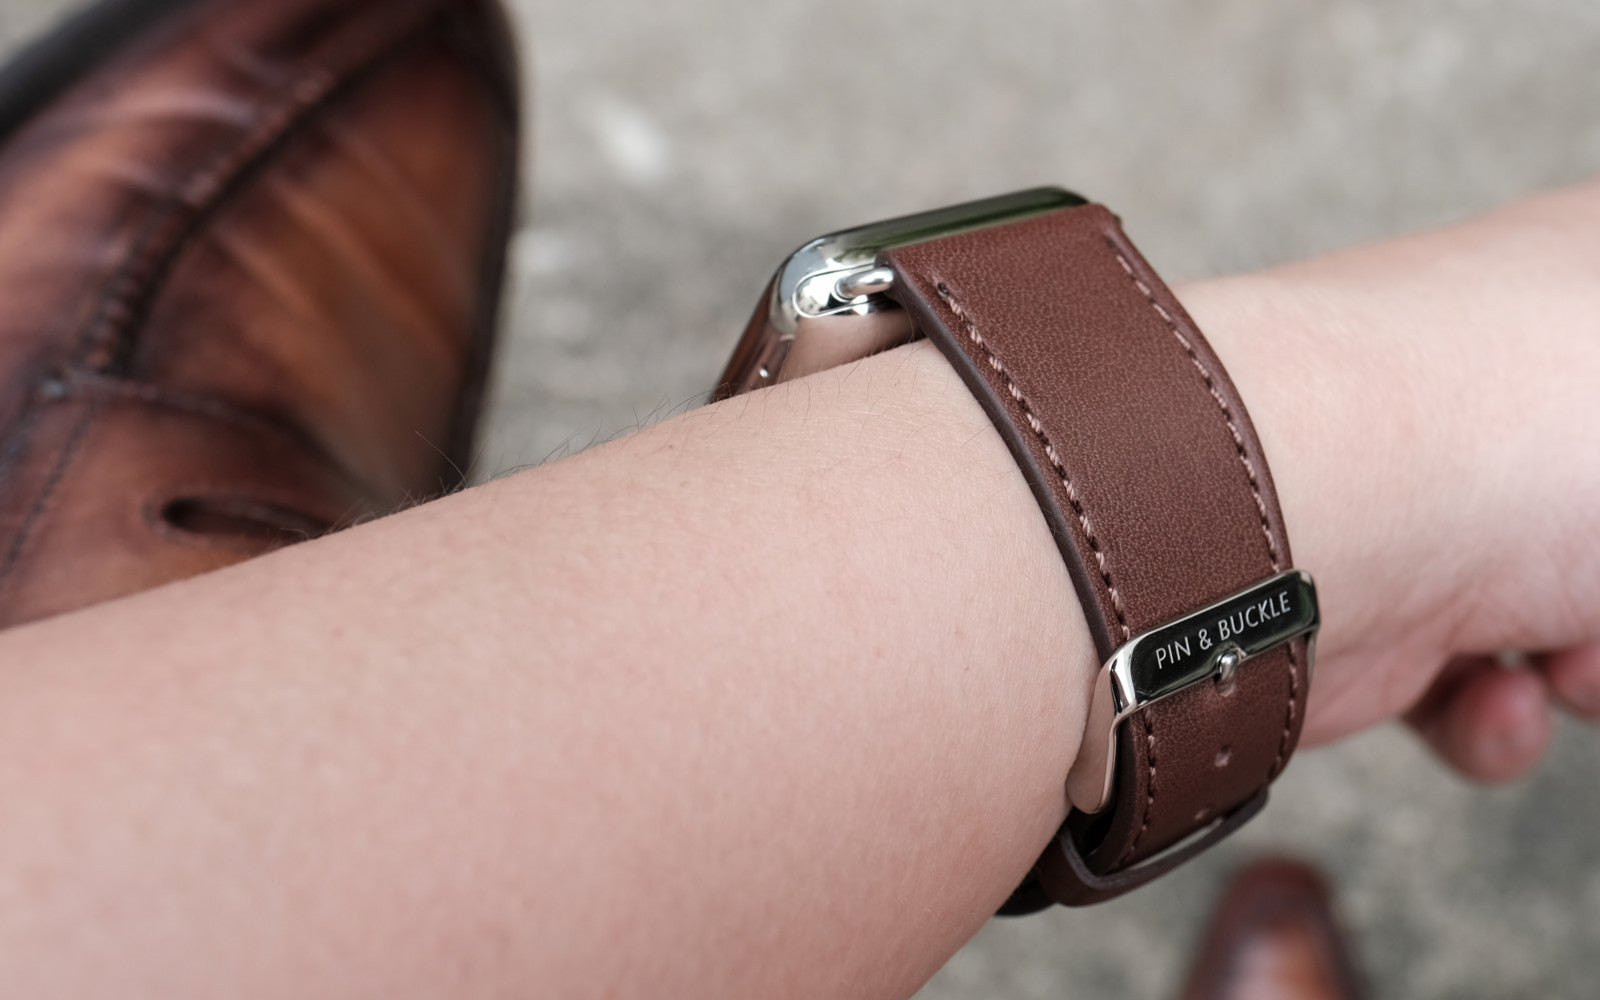 Pin and Buckle Apple Watch Straps - Reviews Banner 3